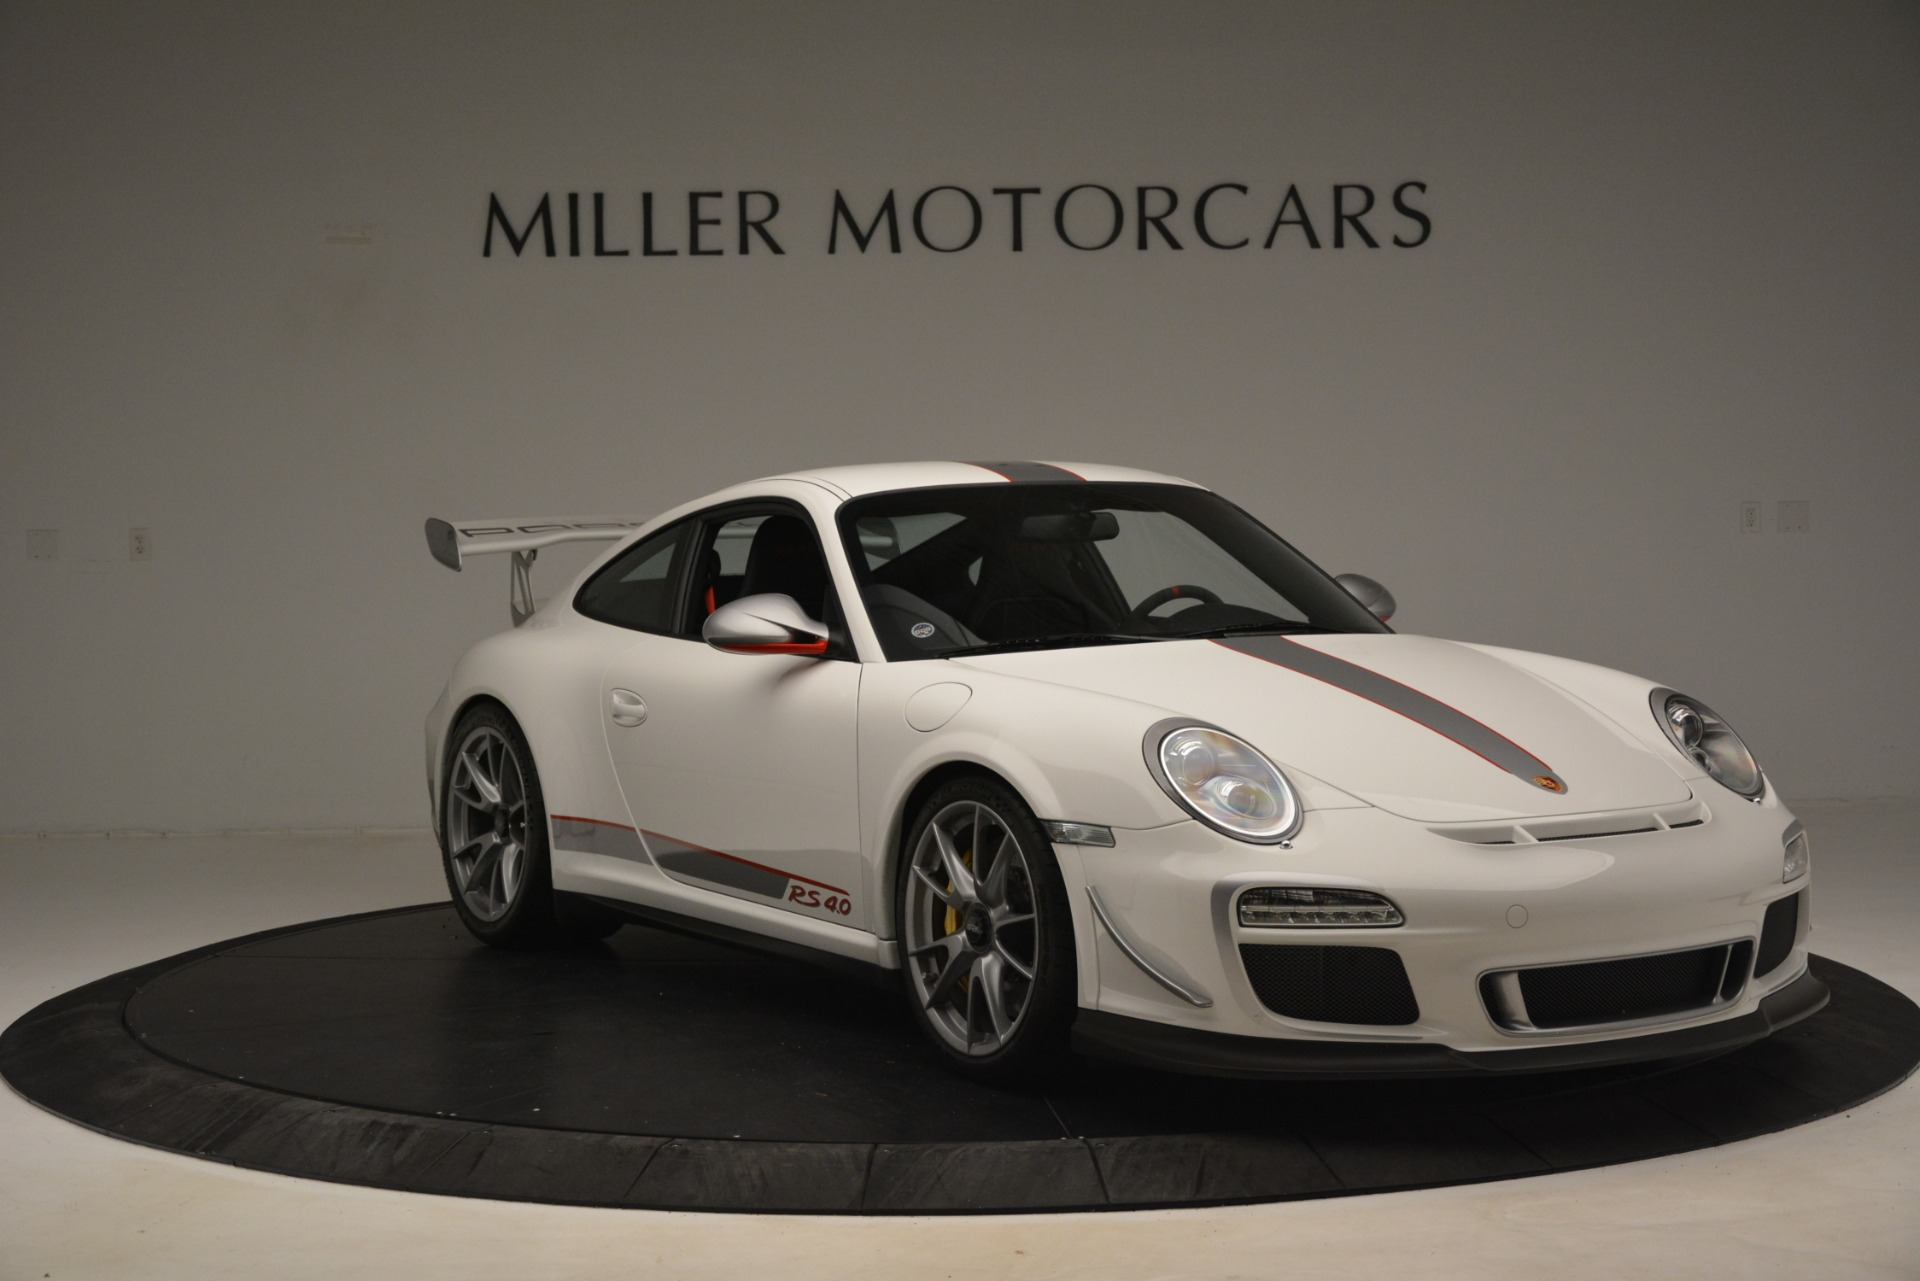 Used 2011 Porsche 911 GT3 RS 4.0 For Sale In Westport, CT 3188_p12